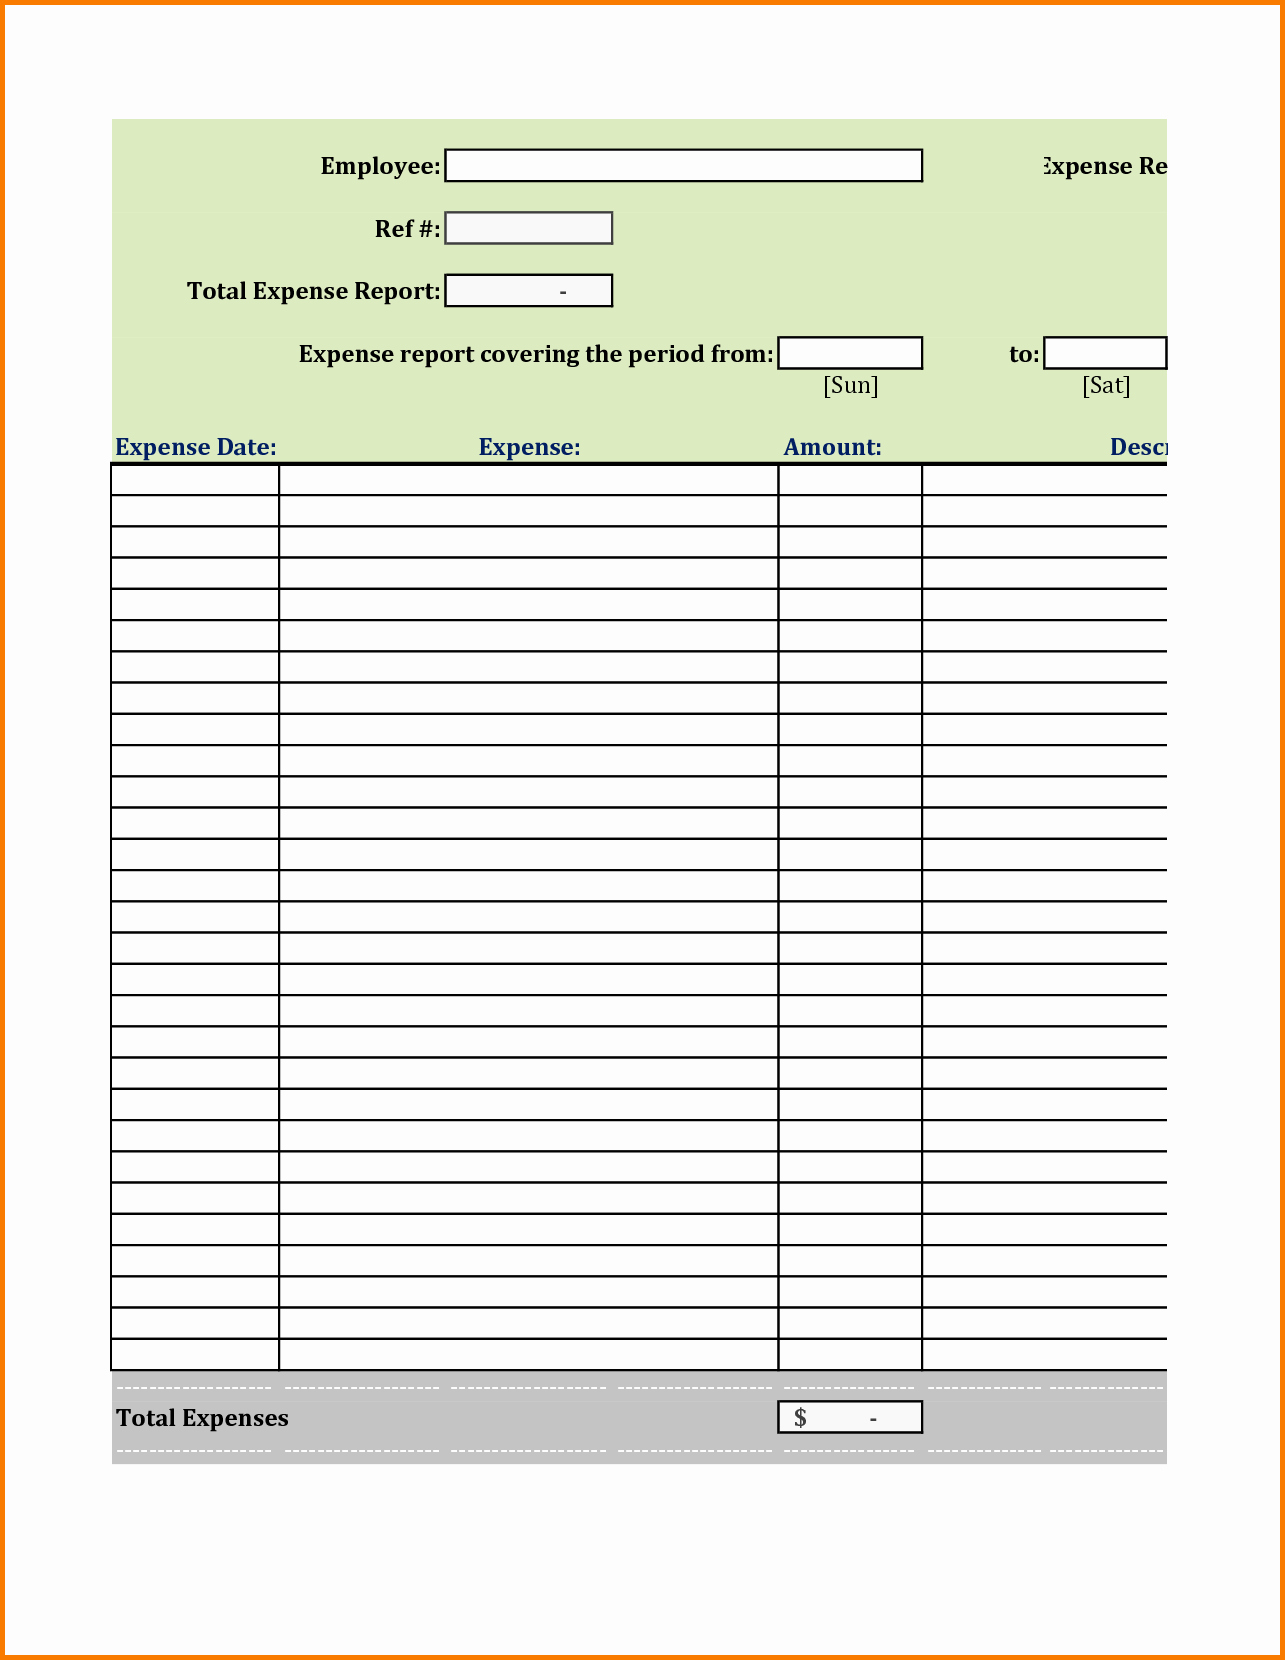 Basic Expense Report Template Best Of Basic Expense Report Template Portablegasgrillweber